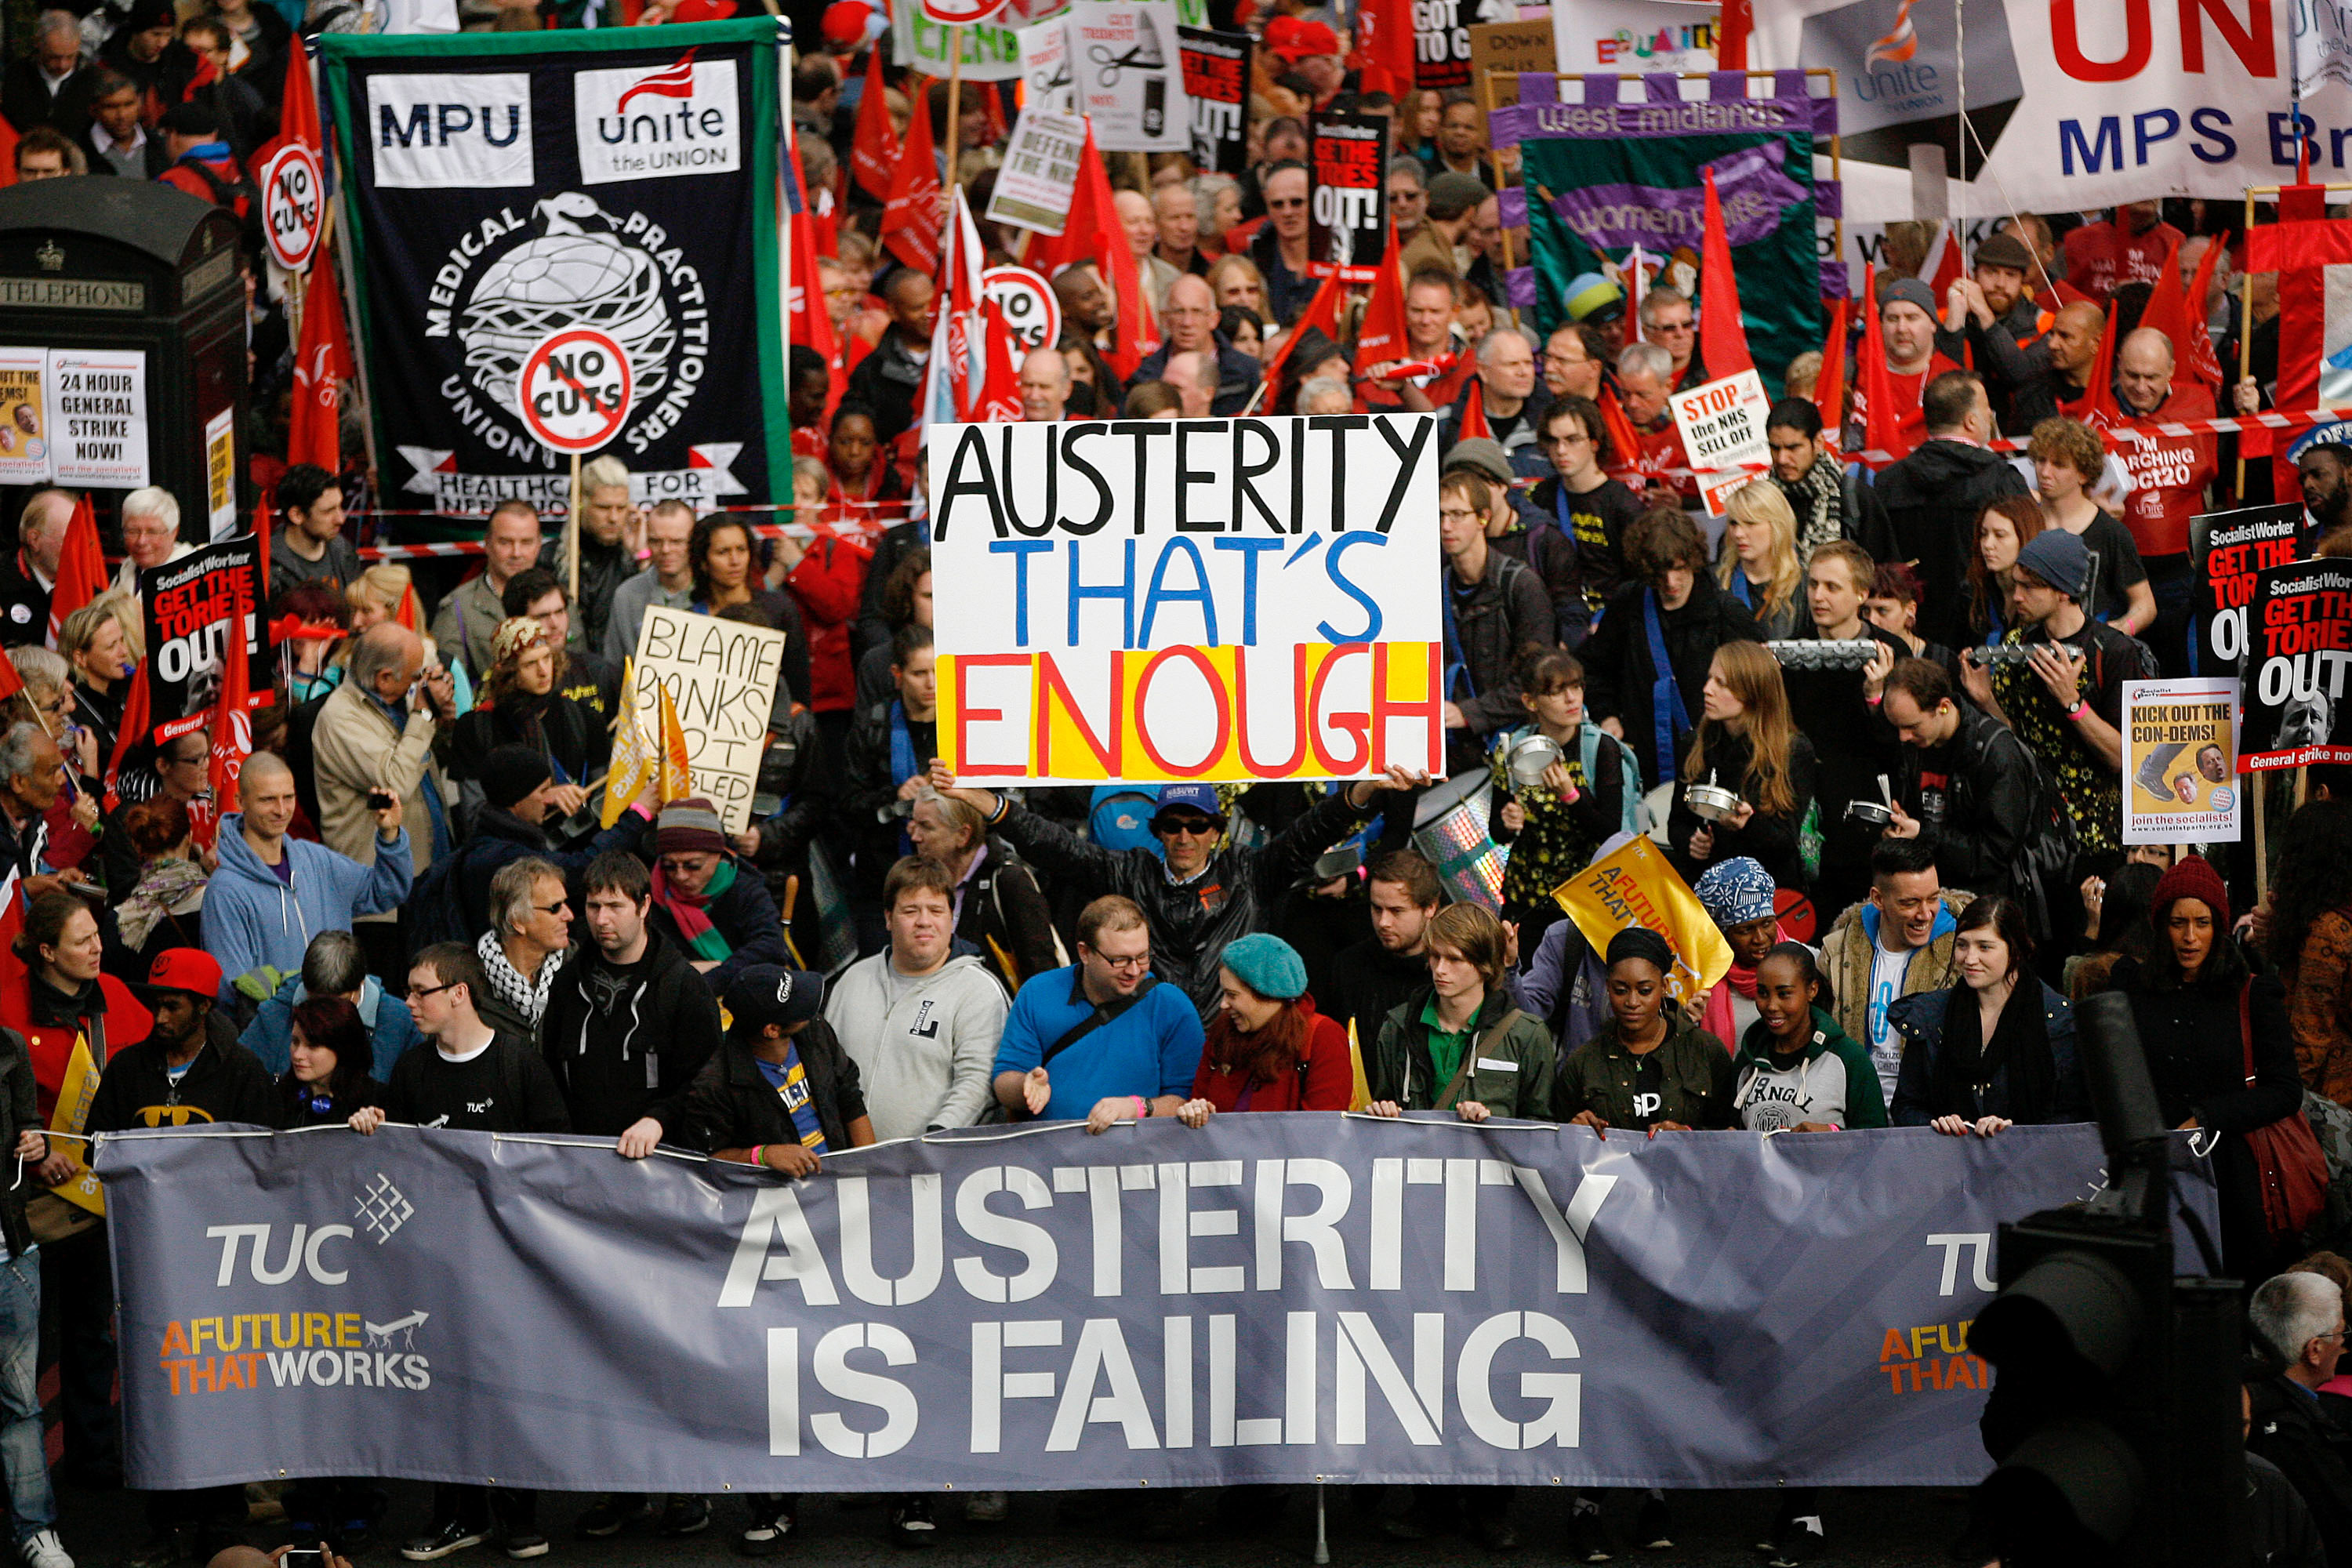 Demonstrators take part in a Trades Union Congress march against the government's austerity measures on Oct. 20, 2012 in London, England. Photo by Warrick Page/Getty Images